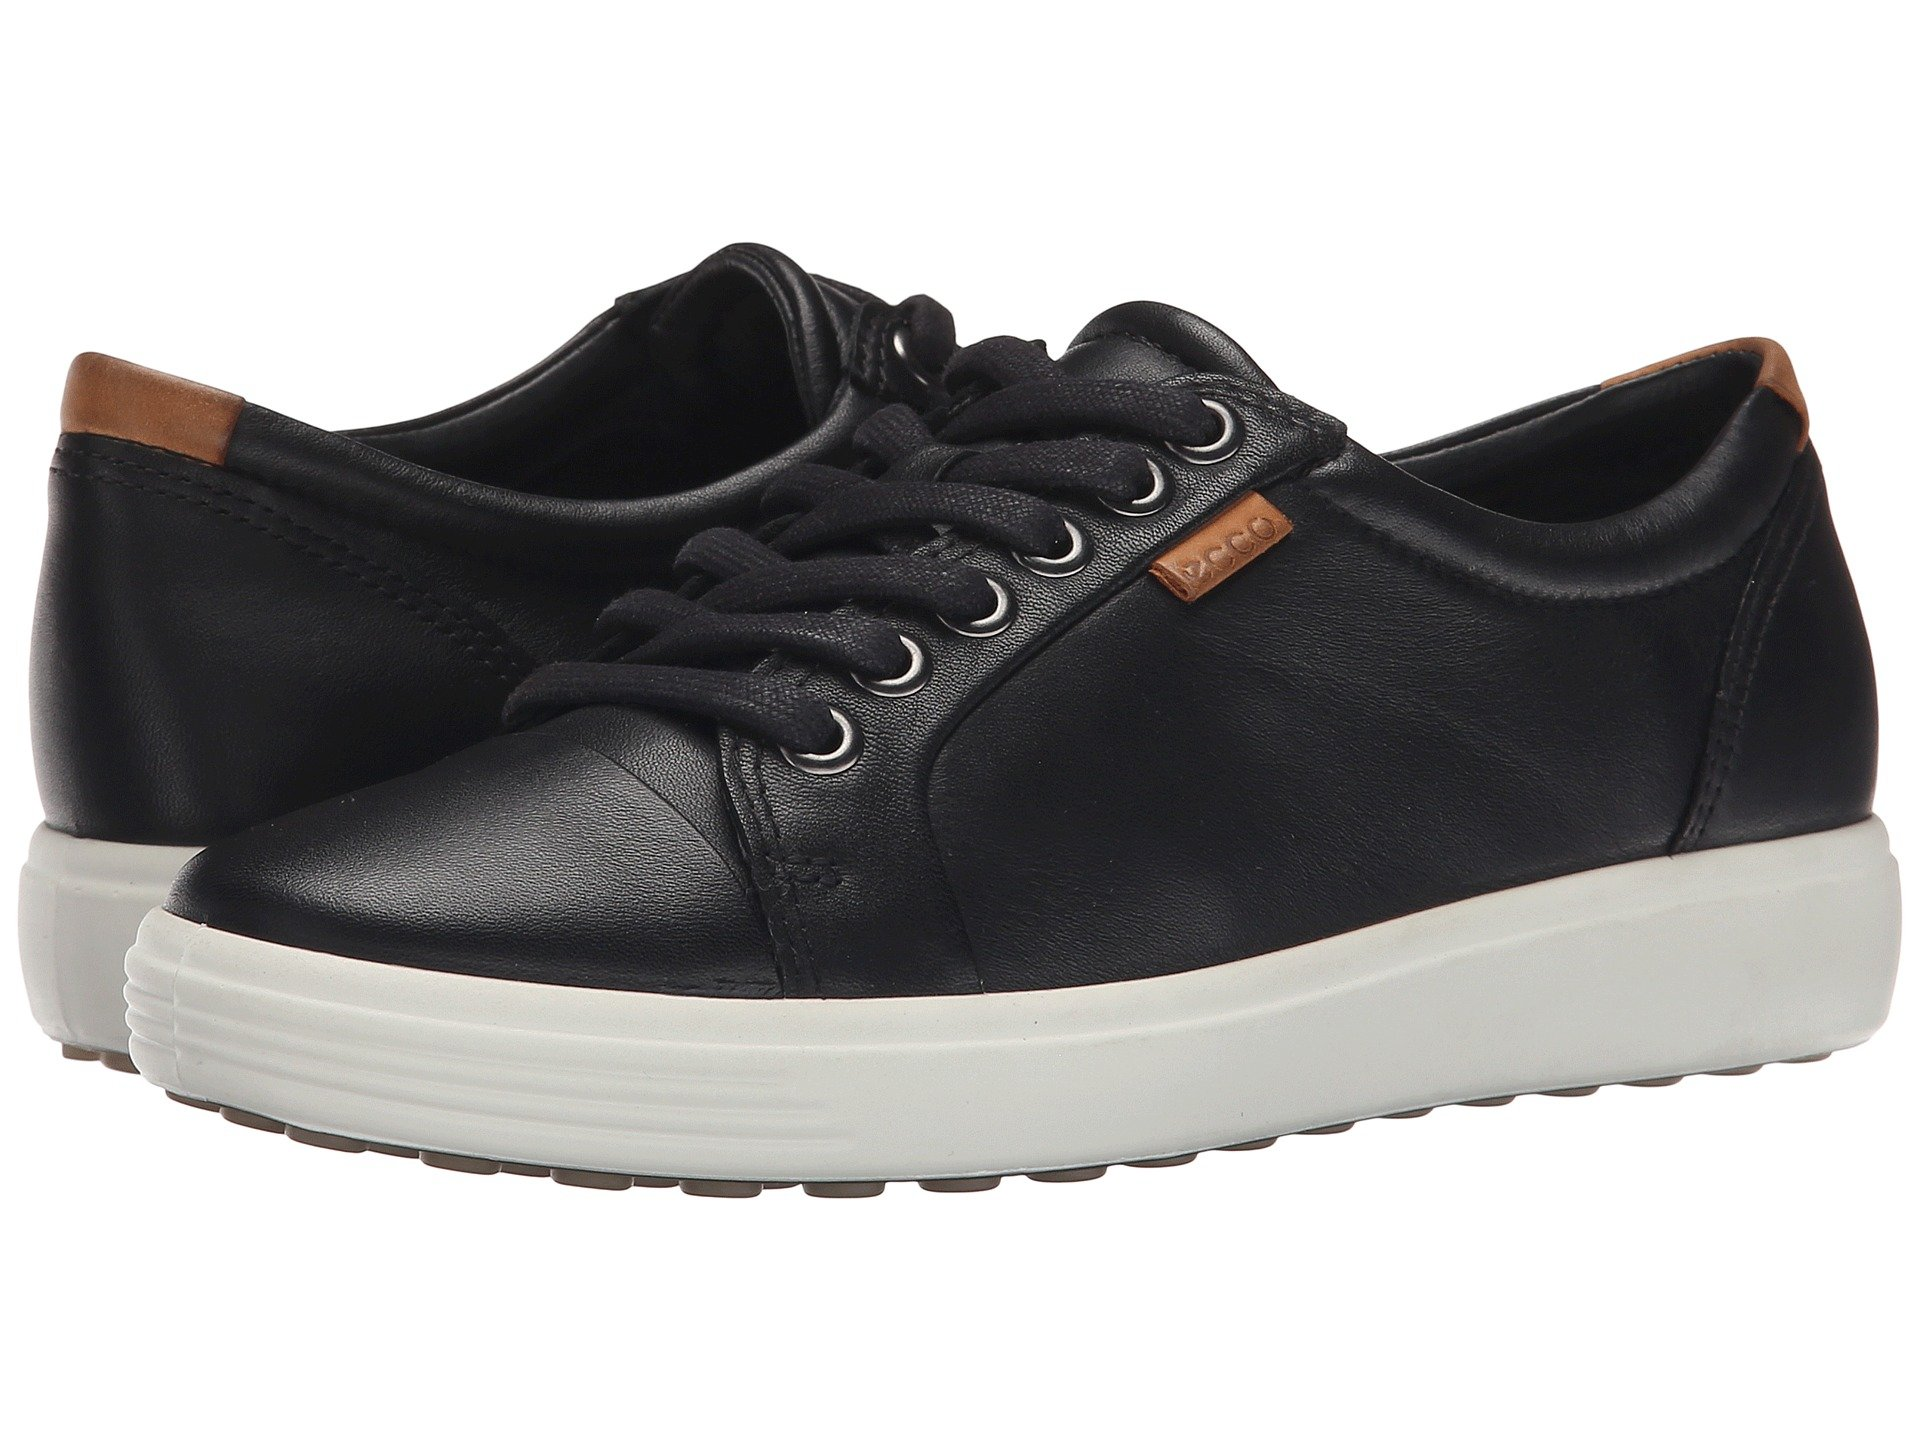 cf2f48b93e Women's ECCO Lifestyle Sneakers + FREE SHIPPING | Shoes | Zappos.com